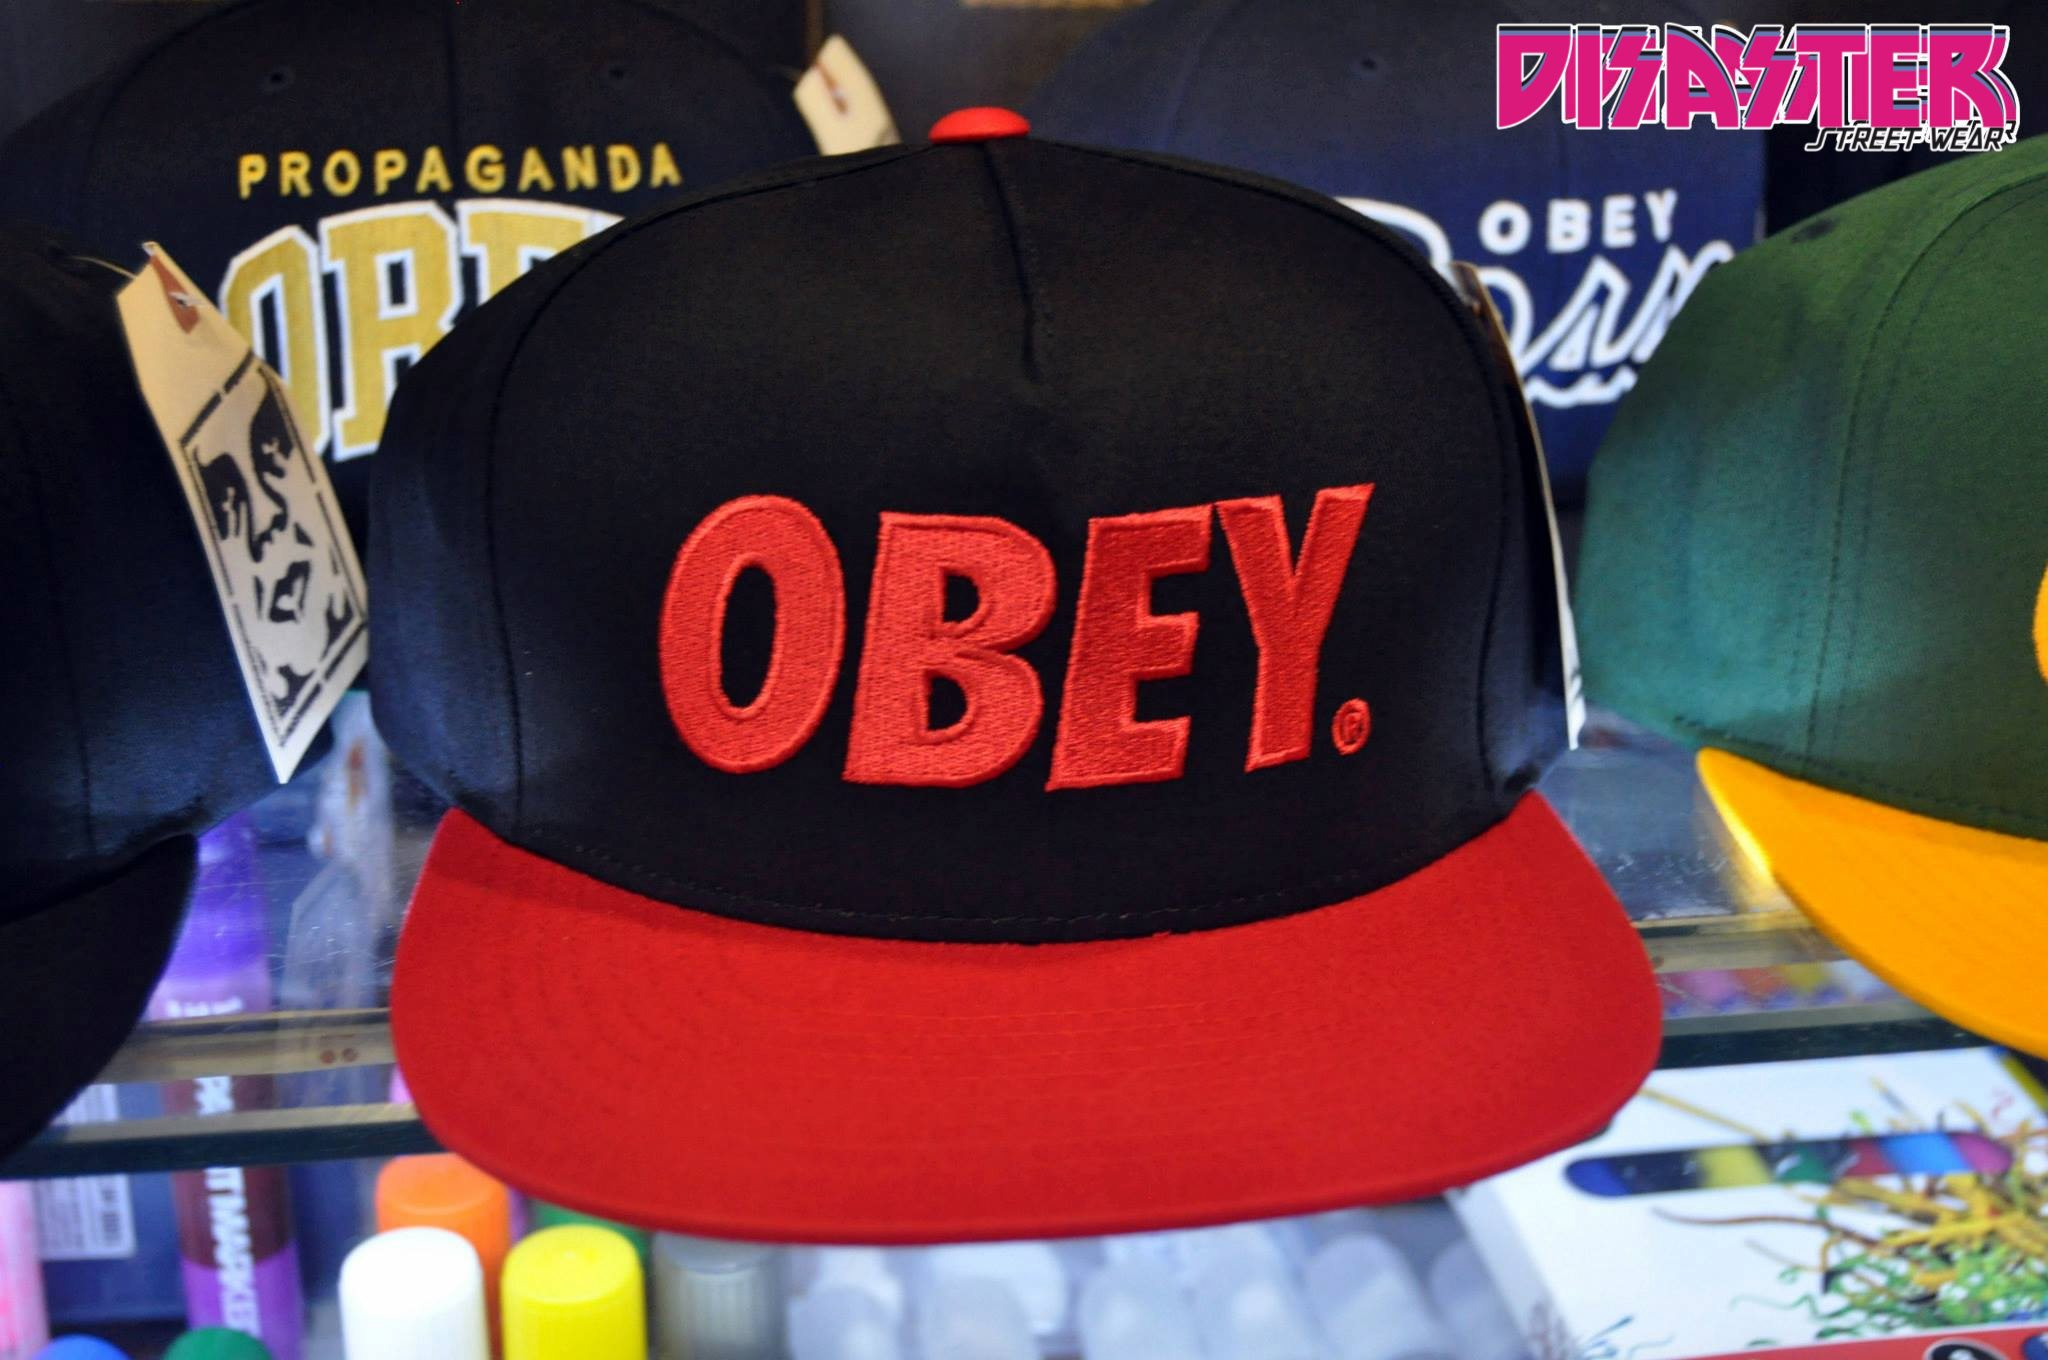 Obey-Gorra-Cap-Snapback -Disaster-Street-Wear-Obey-The-City-www.disasterstreetwear.com-1conlogo a6b7ac2f879